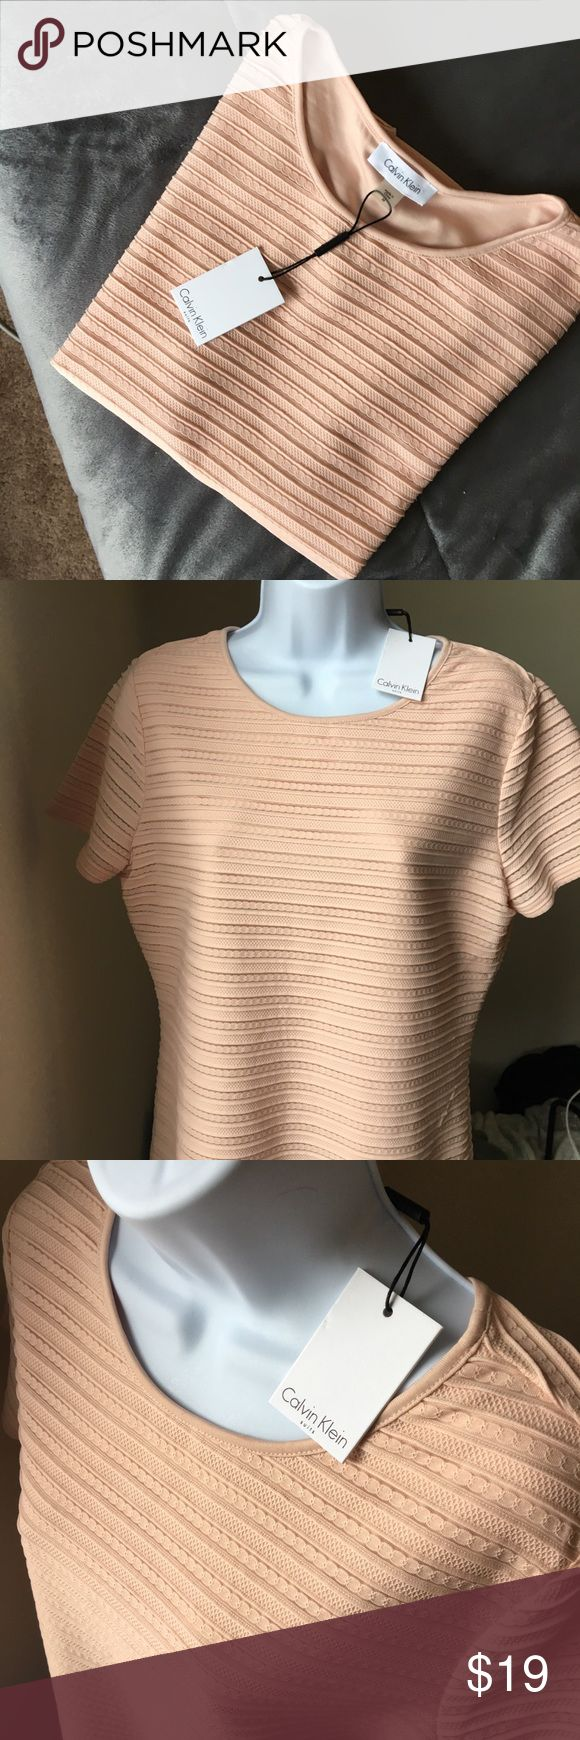 Calvin Klein Top NWT Brand new dressy pink top! Perfect for a pant suit or pencil skirt. Calvin Klein Tops